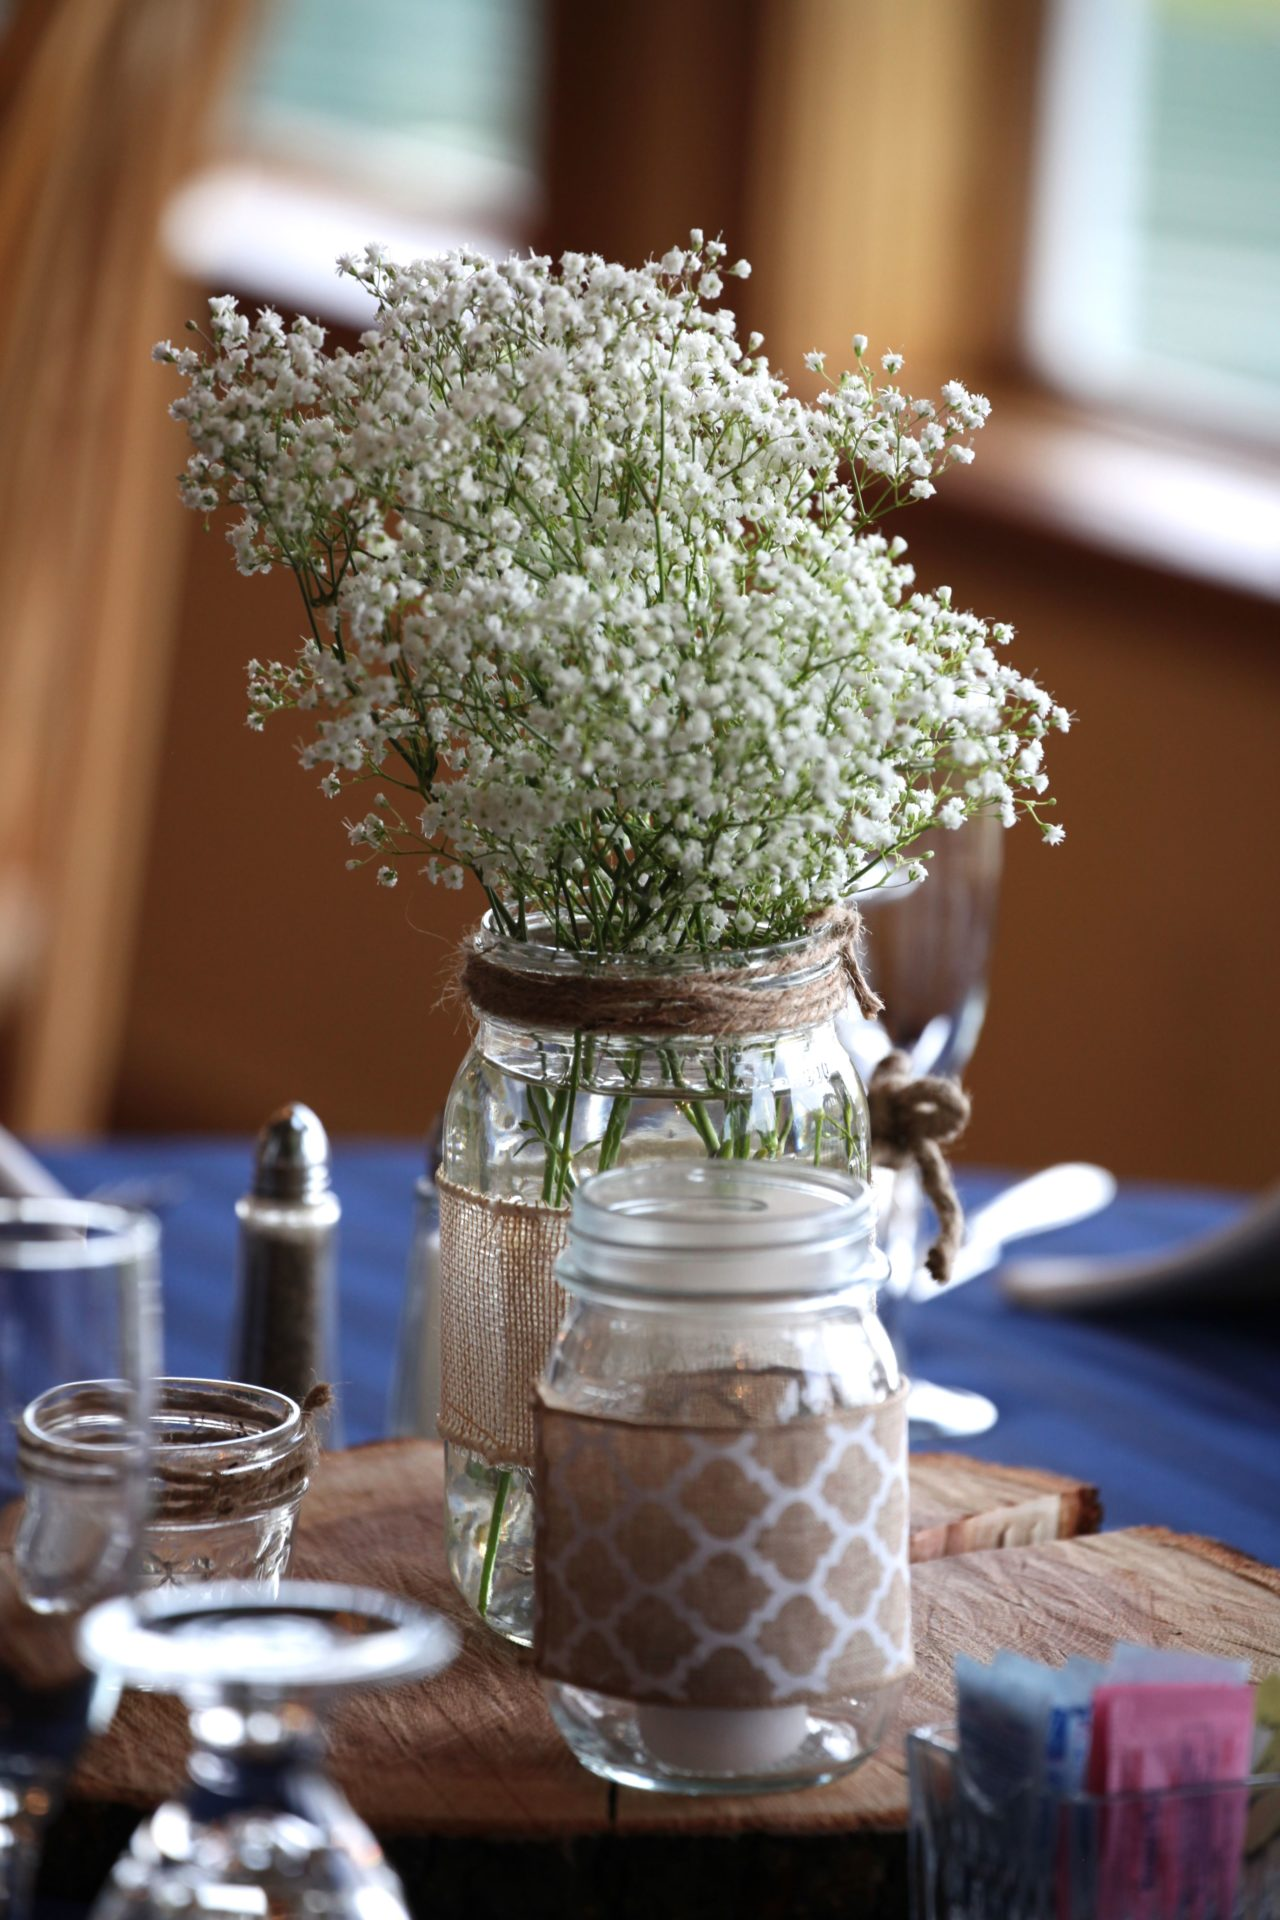 Simple rustic wedding centerpiece with glass jar and baby's breath flowers